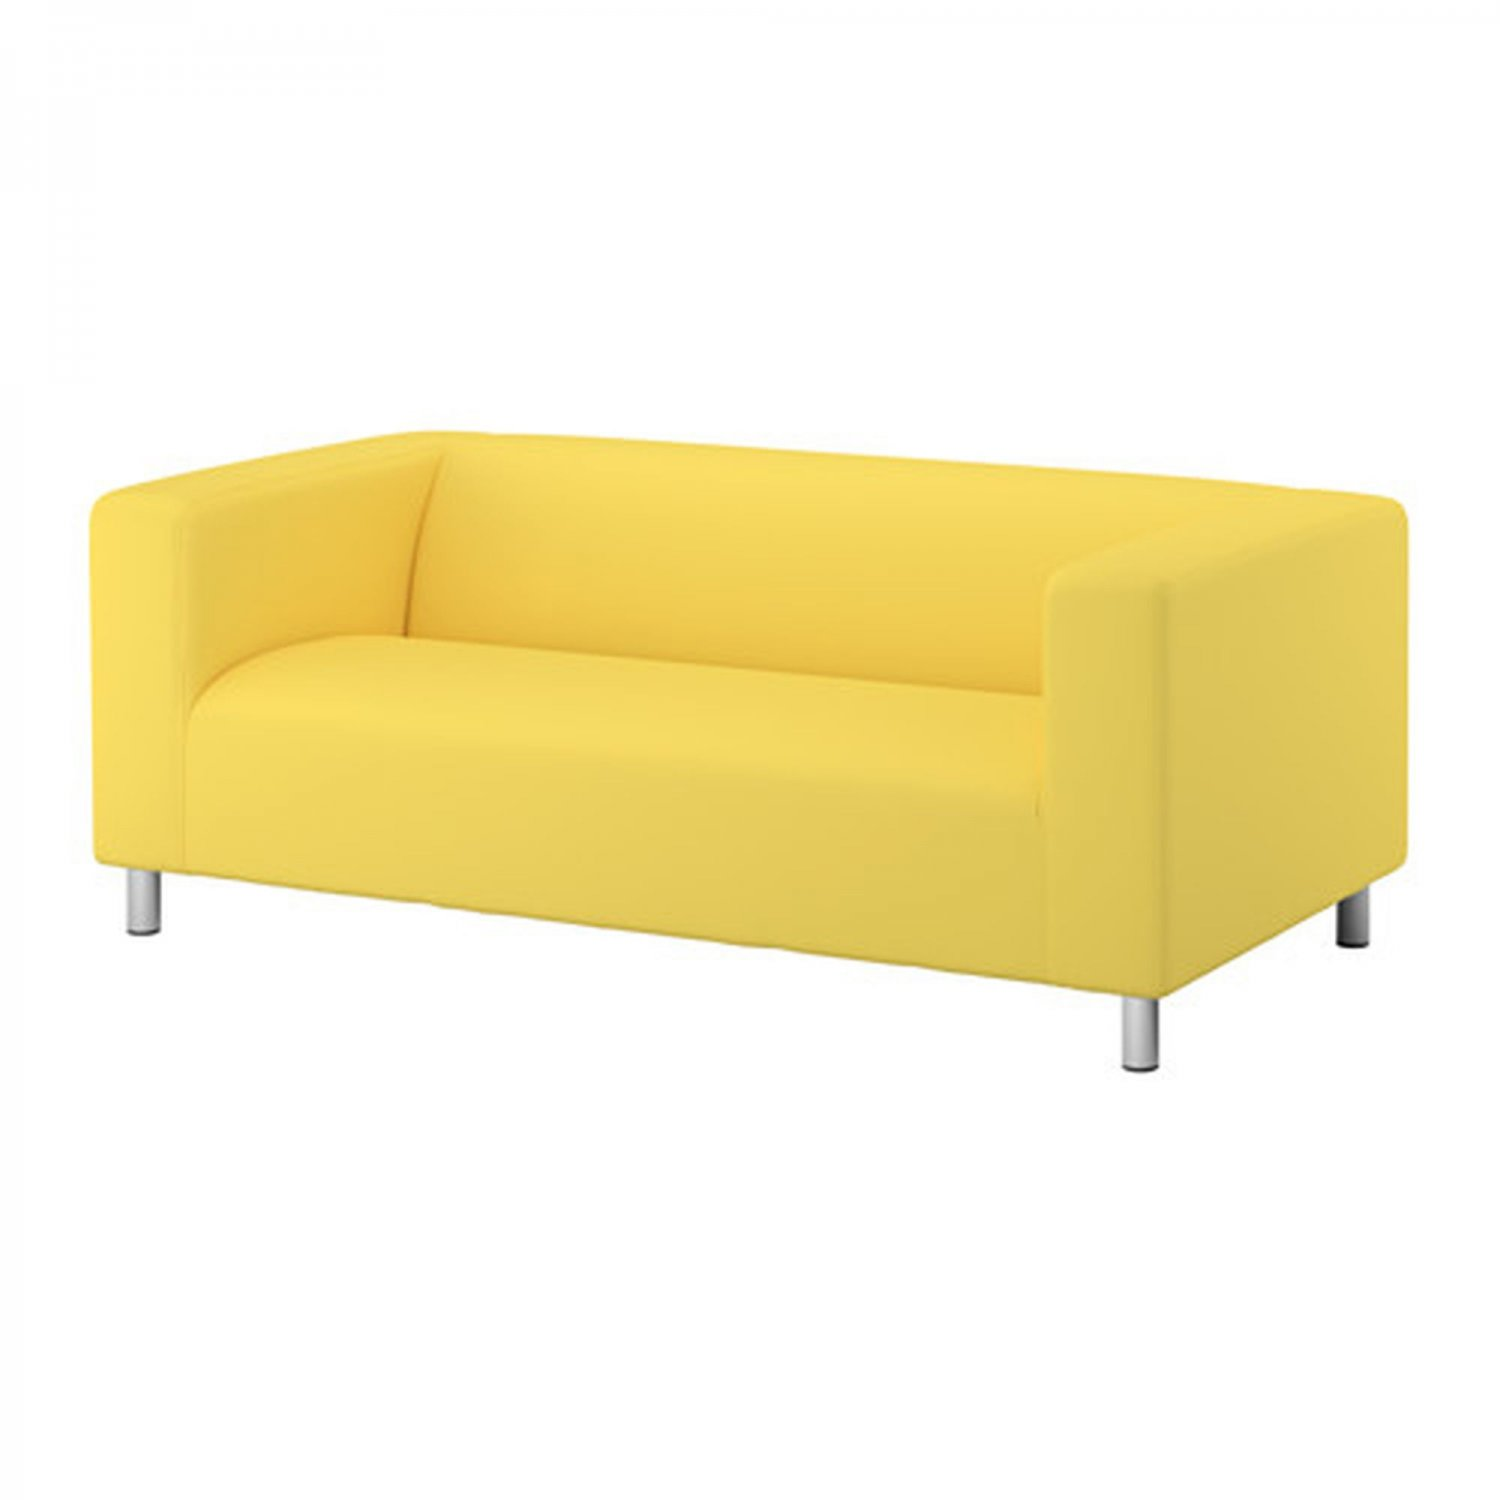 Ikea klippan loveseat sofa slipcover cover vissle yellow Loveseat slip cover